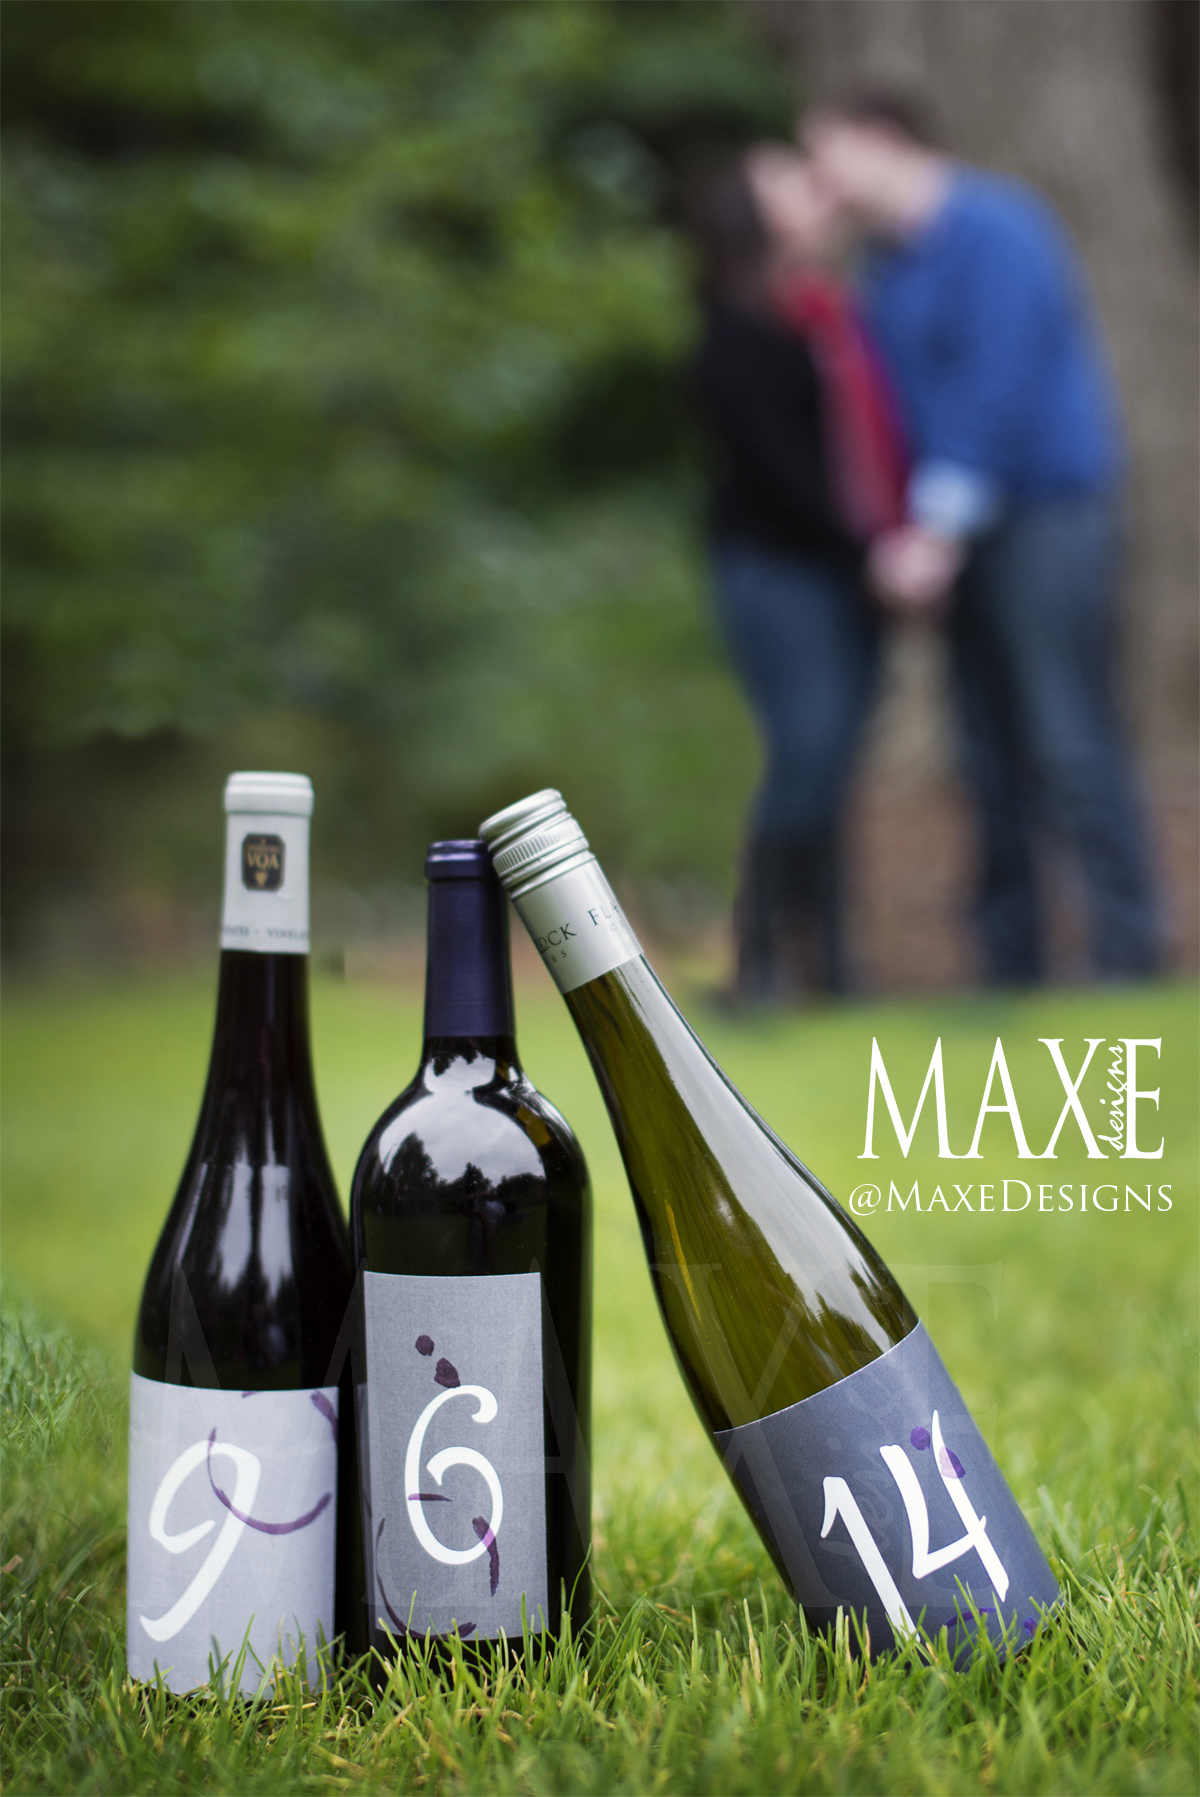 Custom wine labels were created for Samantha & Nick's engagement photos for use on their One-of-a-Kind Save the Dates!